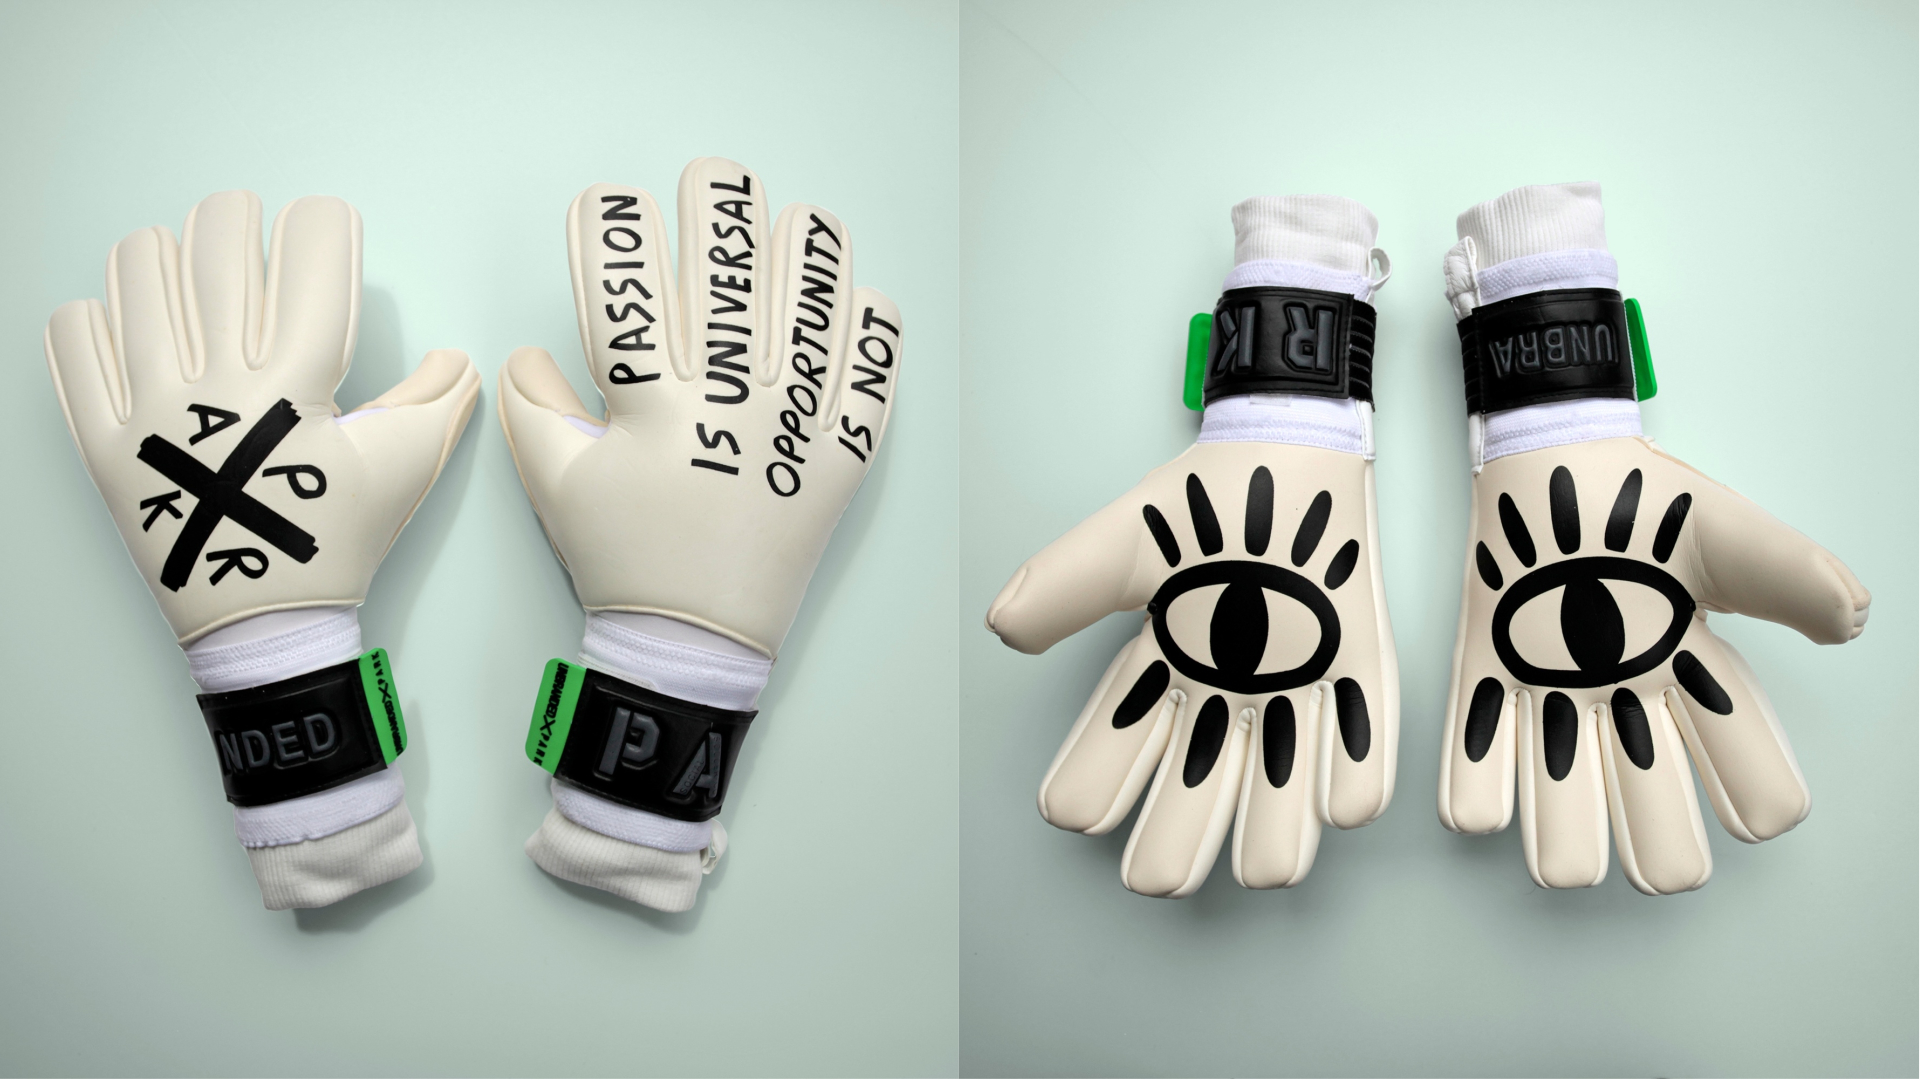 Goalkeeper gloves from Park Social Soccer Co